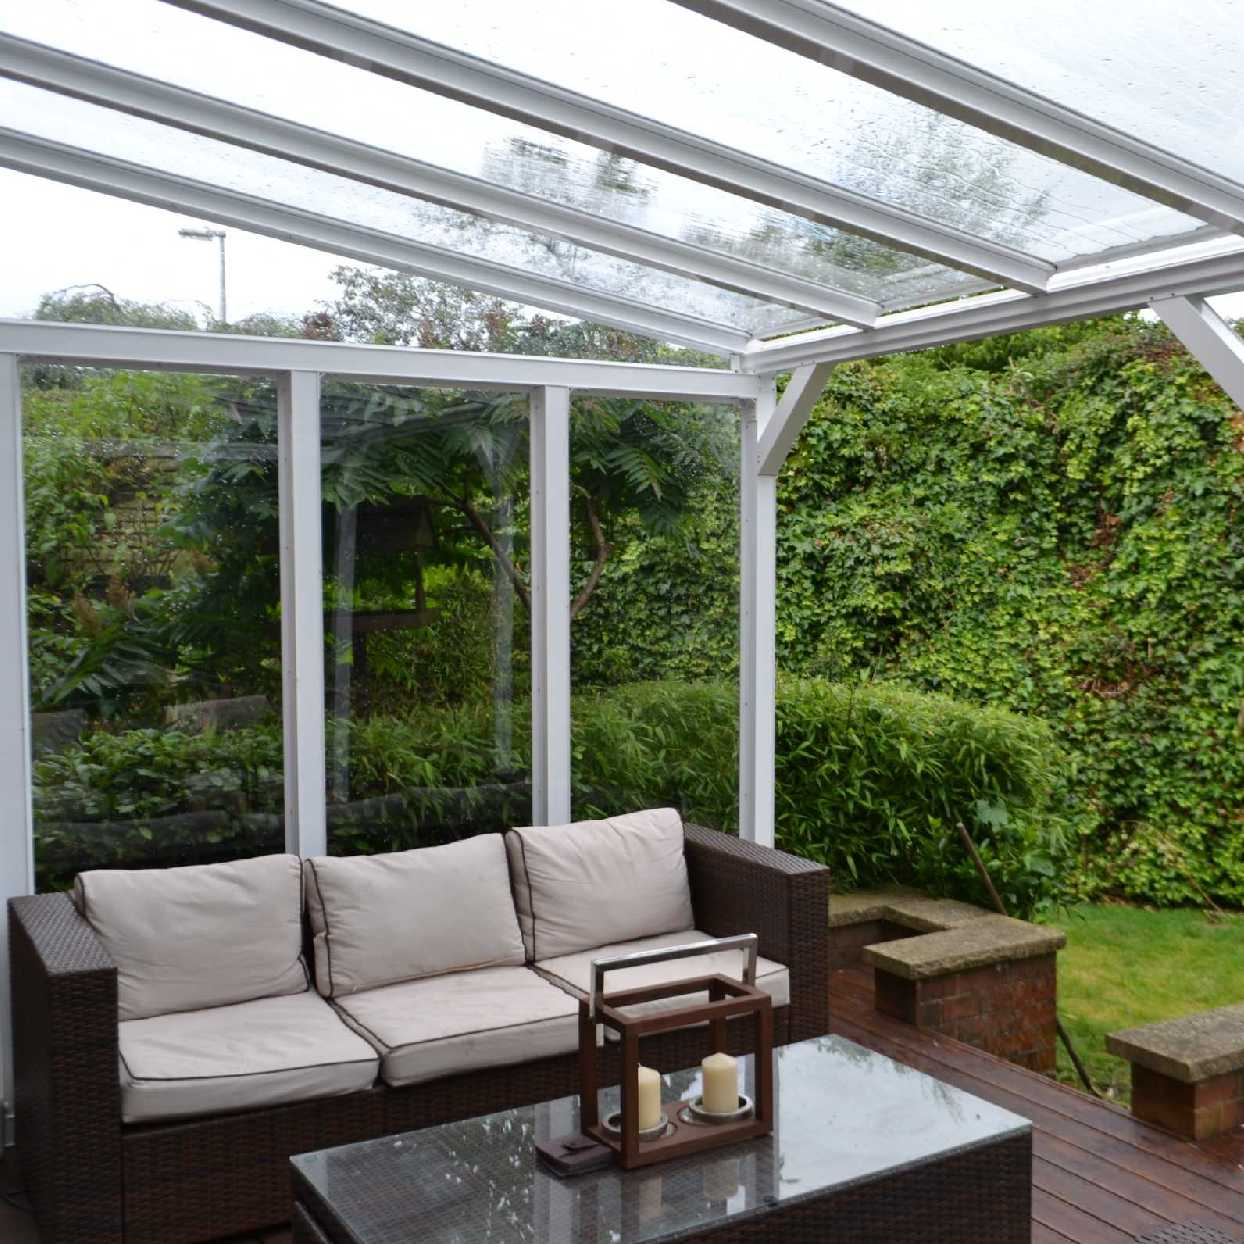 Great selection of Omega Smart WhiteLean-To Canopy with 16mm Polycarbonate Glazing - 8.4m (W) x 2.0m (P), (4) Supporting Posts